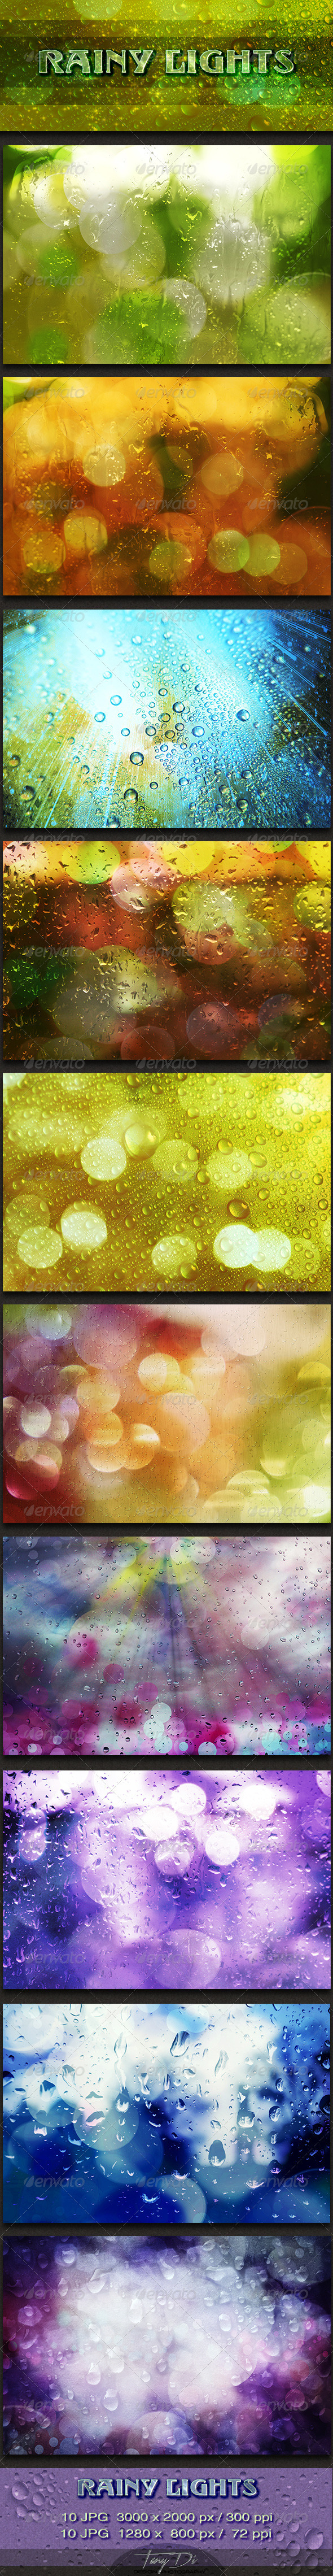 Rainy Lights - Miscellaneous Backgrounds